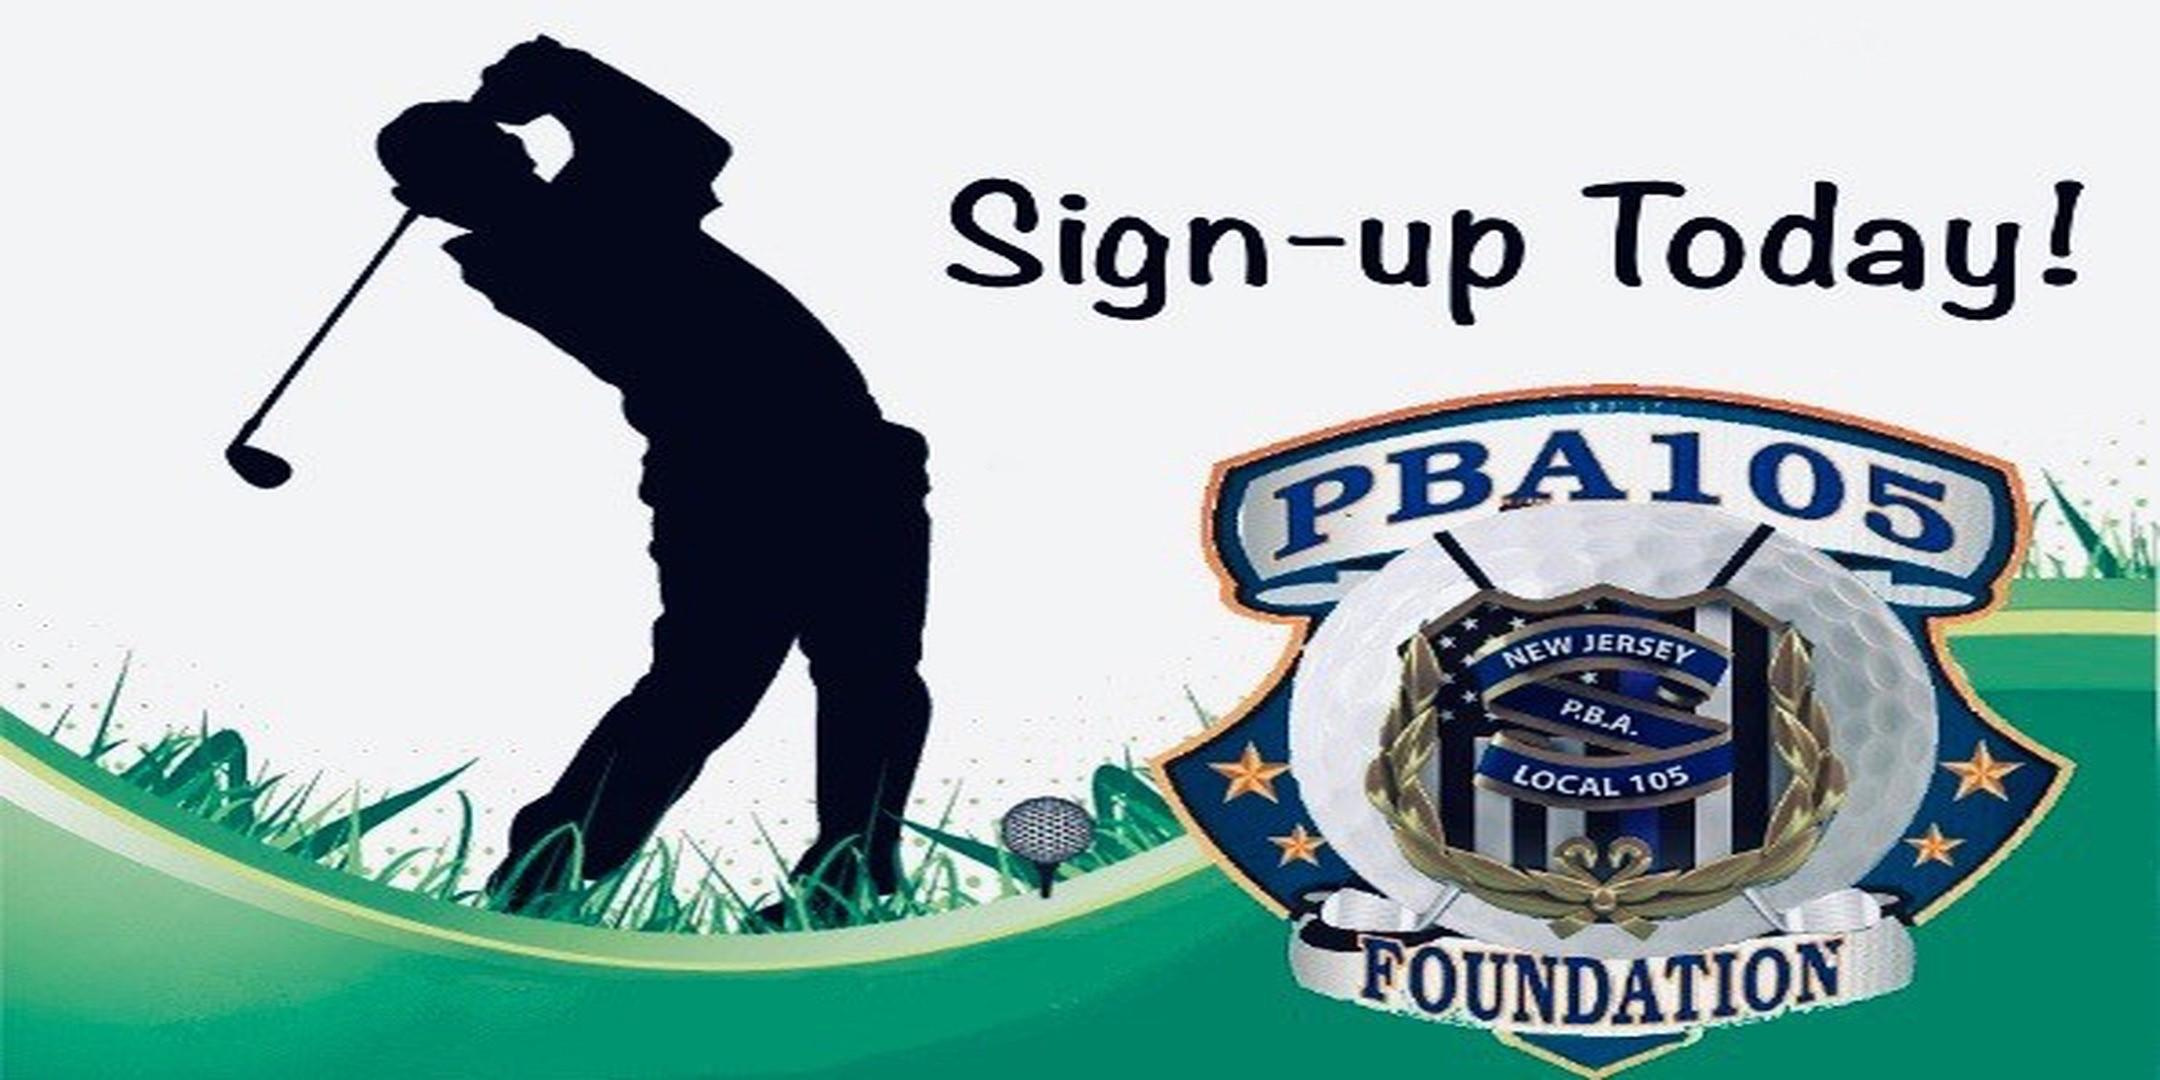 PBA 105's Foundation Golf Outing